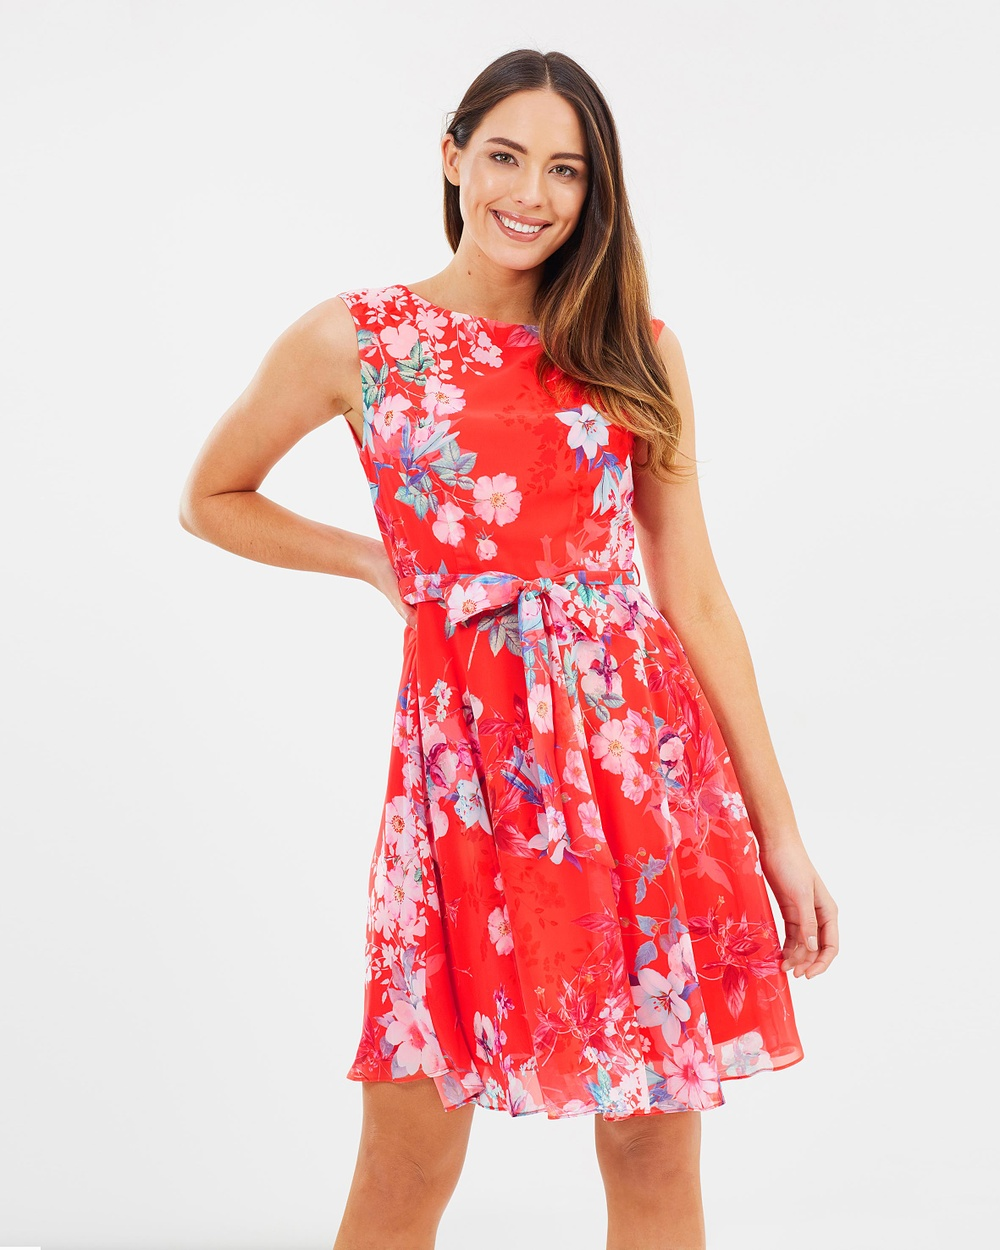 Wallis Pretty Neon Fit & Flare Dress Printed Dresses Coral Pretty Neon Fit & Flare Dress